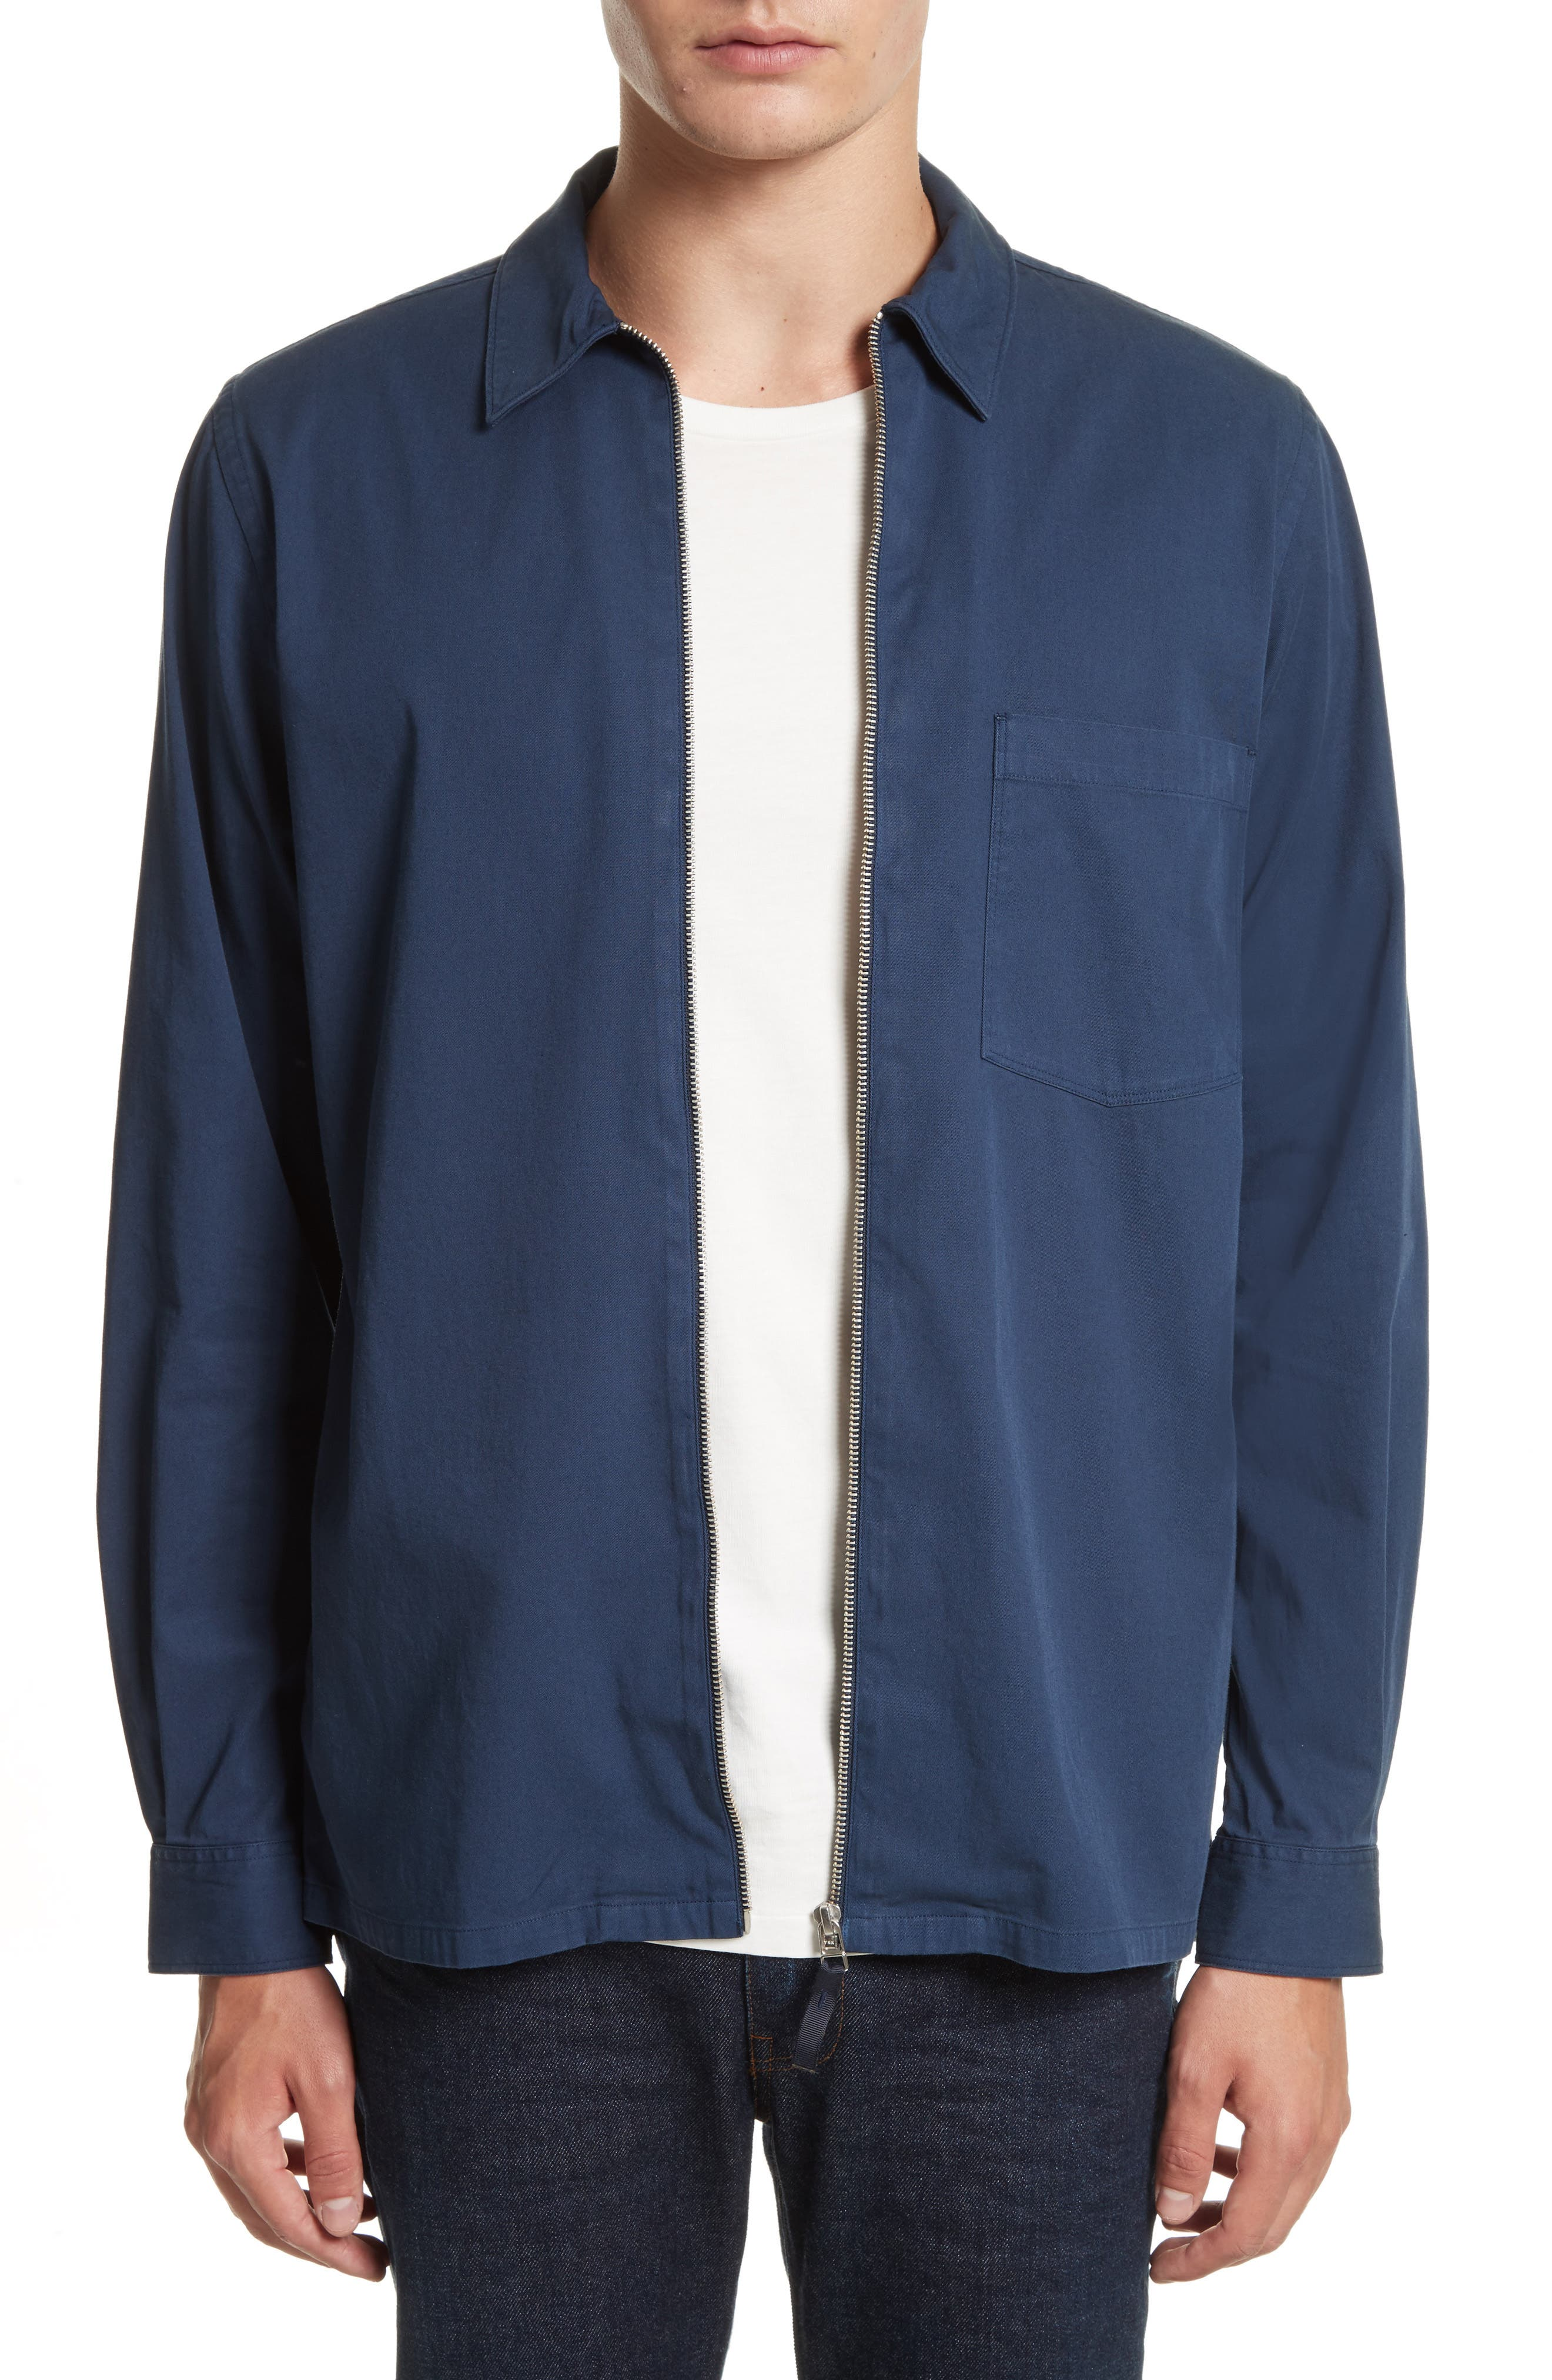 Jens Garment Dyed Twill Jacket,                             Main thumbnail 1, color,                             Navy